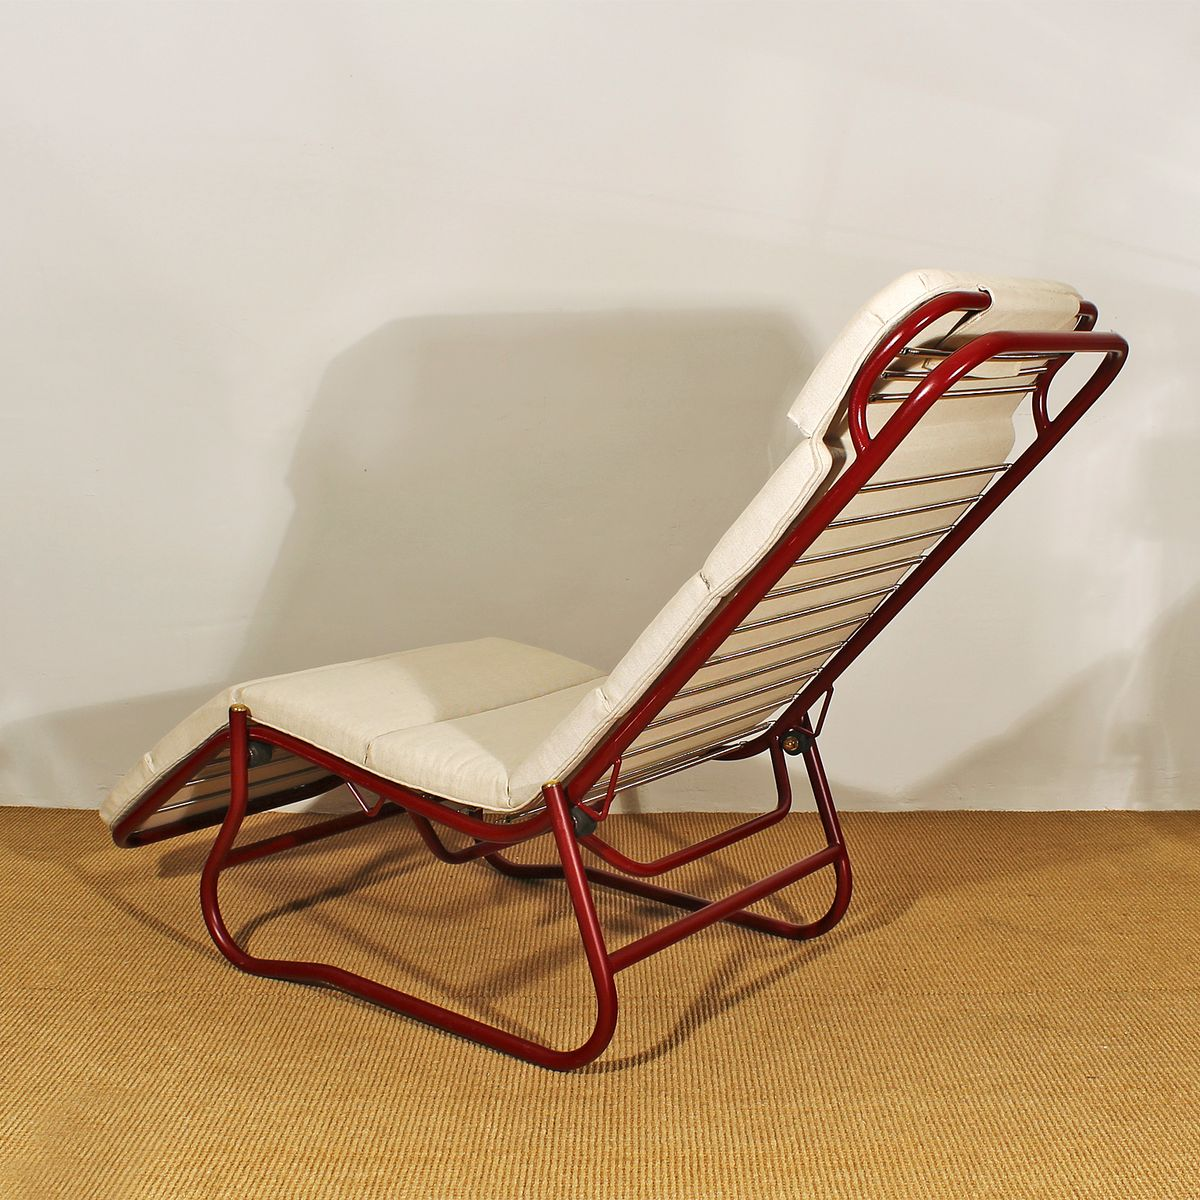 Vintage bauhaus style chaise longue 1920s for sale at pamono for Chaise de style